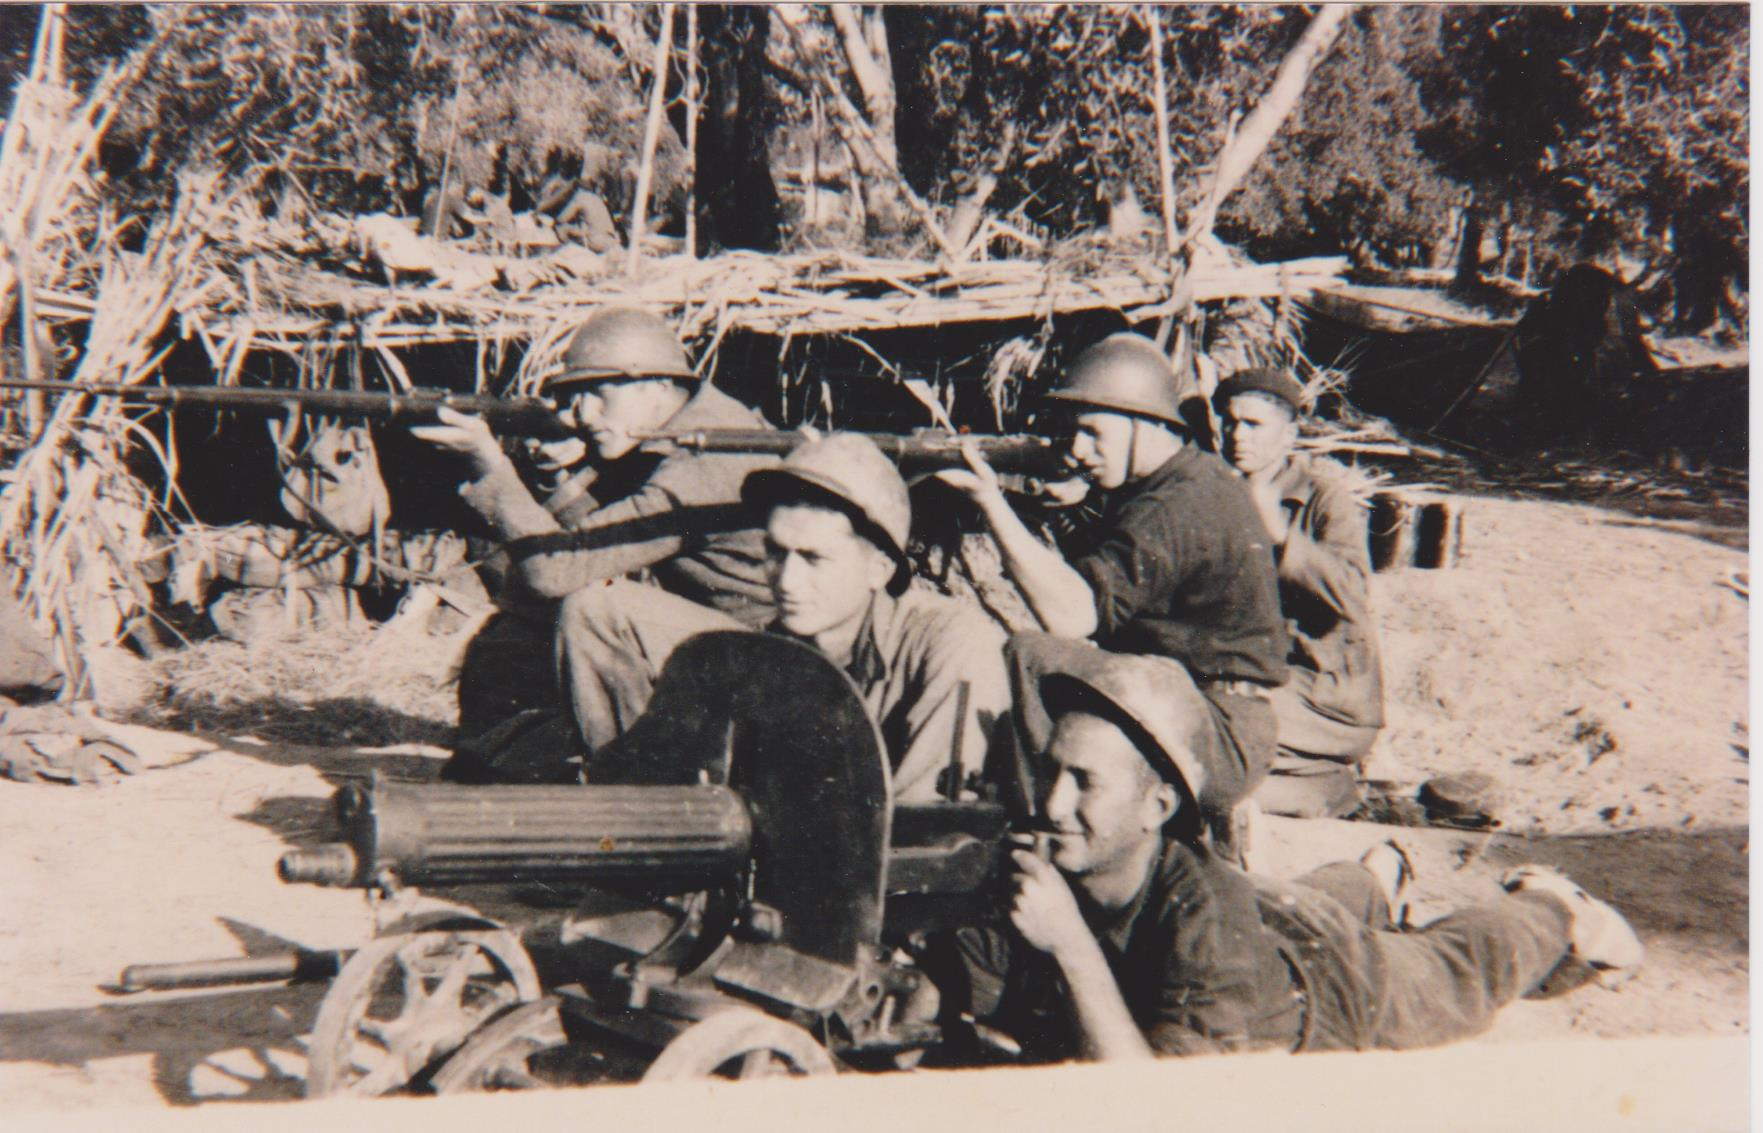 Soldiers in uniform aim rifles and man artillery